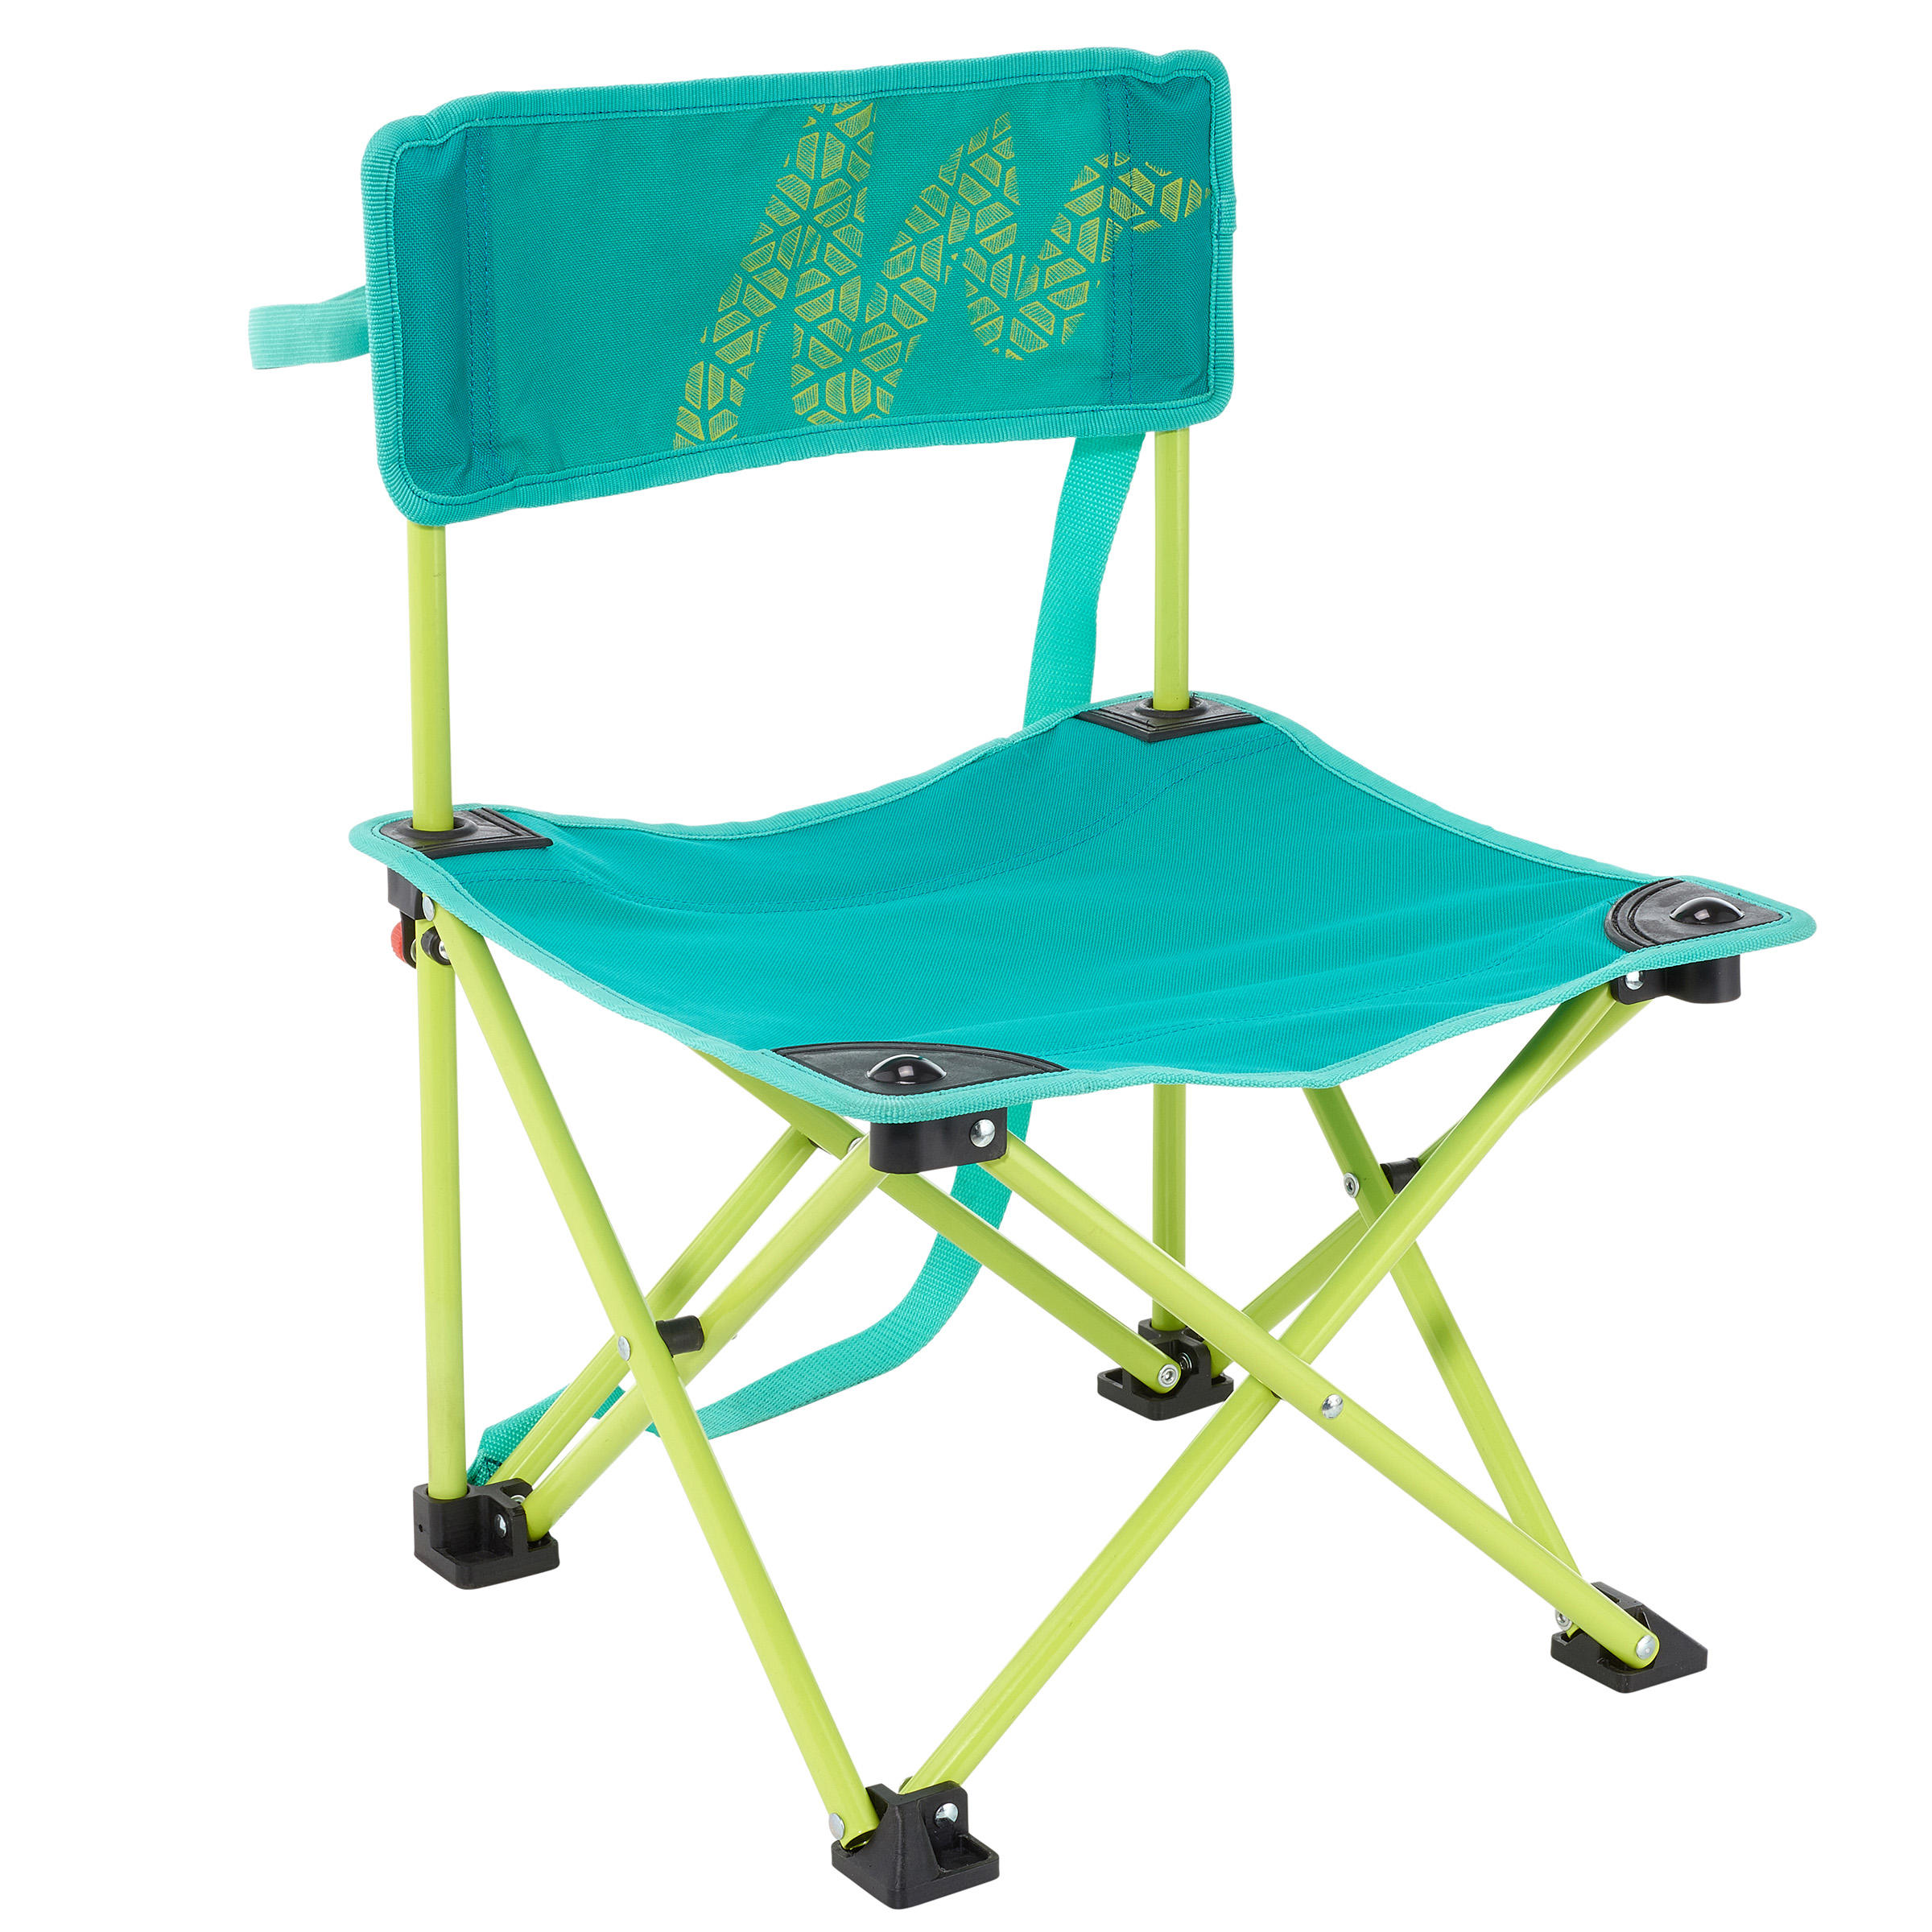 Children's camping chair / hiker's camp green